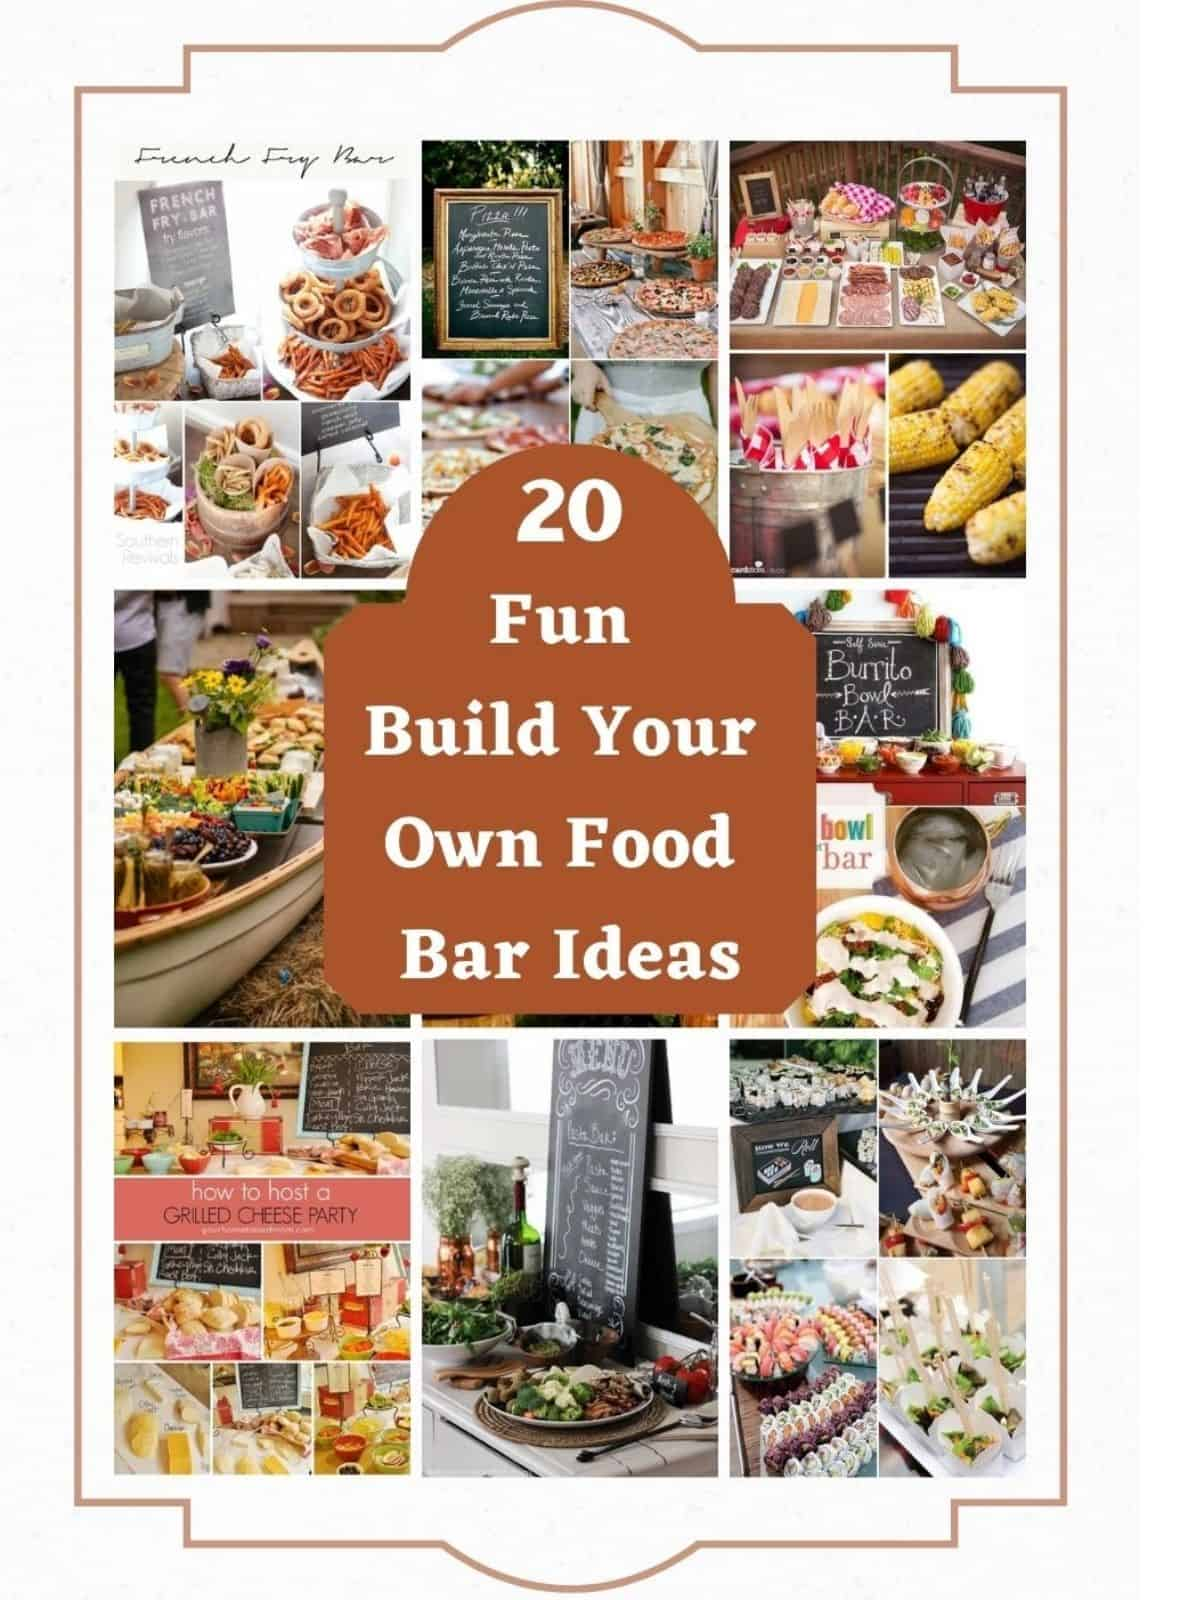 food bar menu ideas with pictures of food